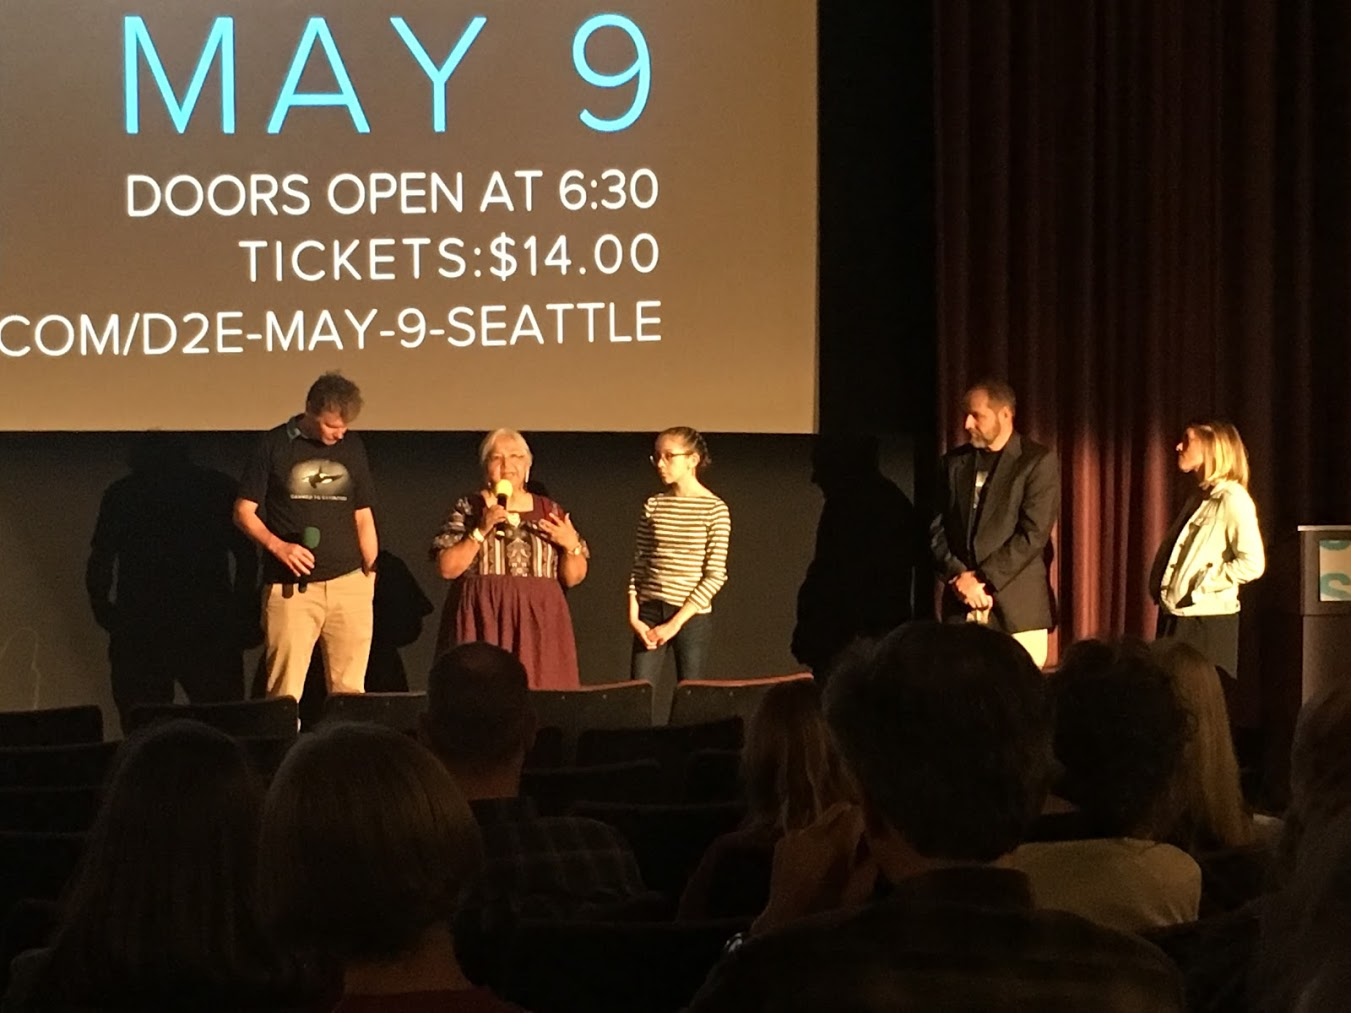 Left to Right: Writer Steven Hawley, Dam Removal Advocate Carrie Chapman Nightwalker Schuster, Whale Activist London Fletcher, Director Michael Peterson, and Moderator Alison Morrow from respond to questions from the audience.